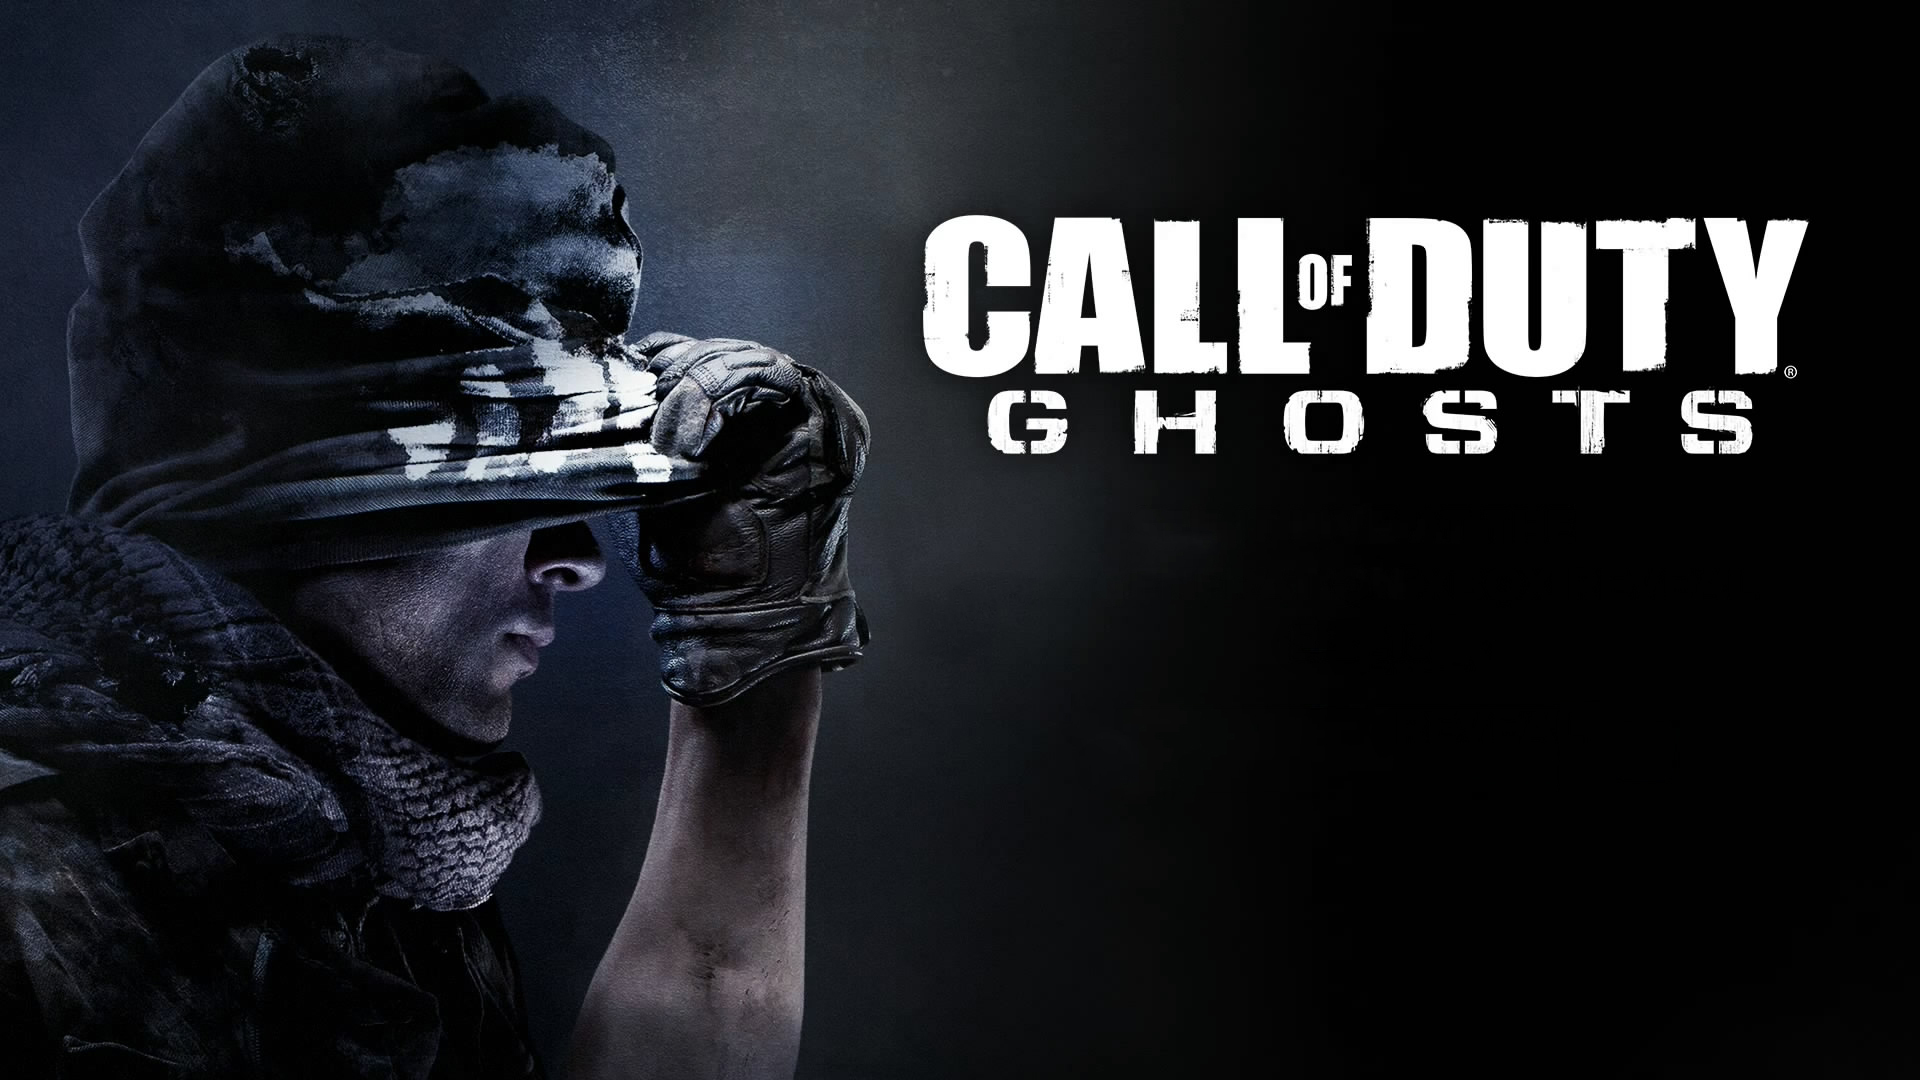 New Call of Duty: Ghosts Game Update Out Now For Xbox One, Xbox 360 and PC